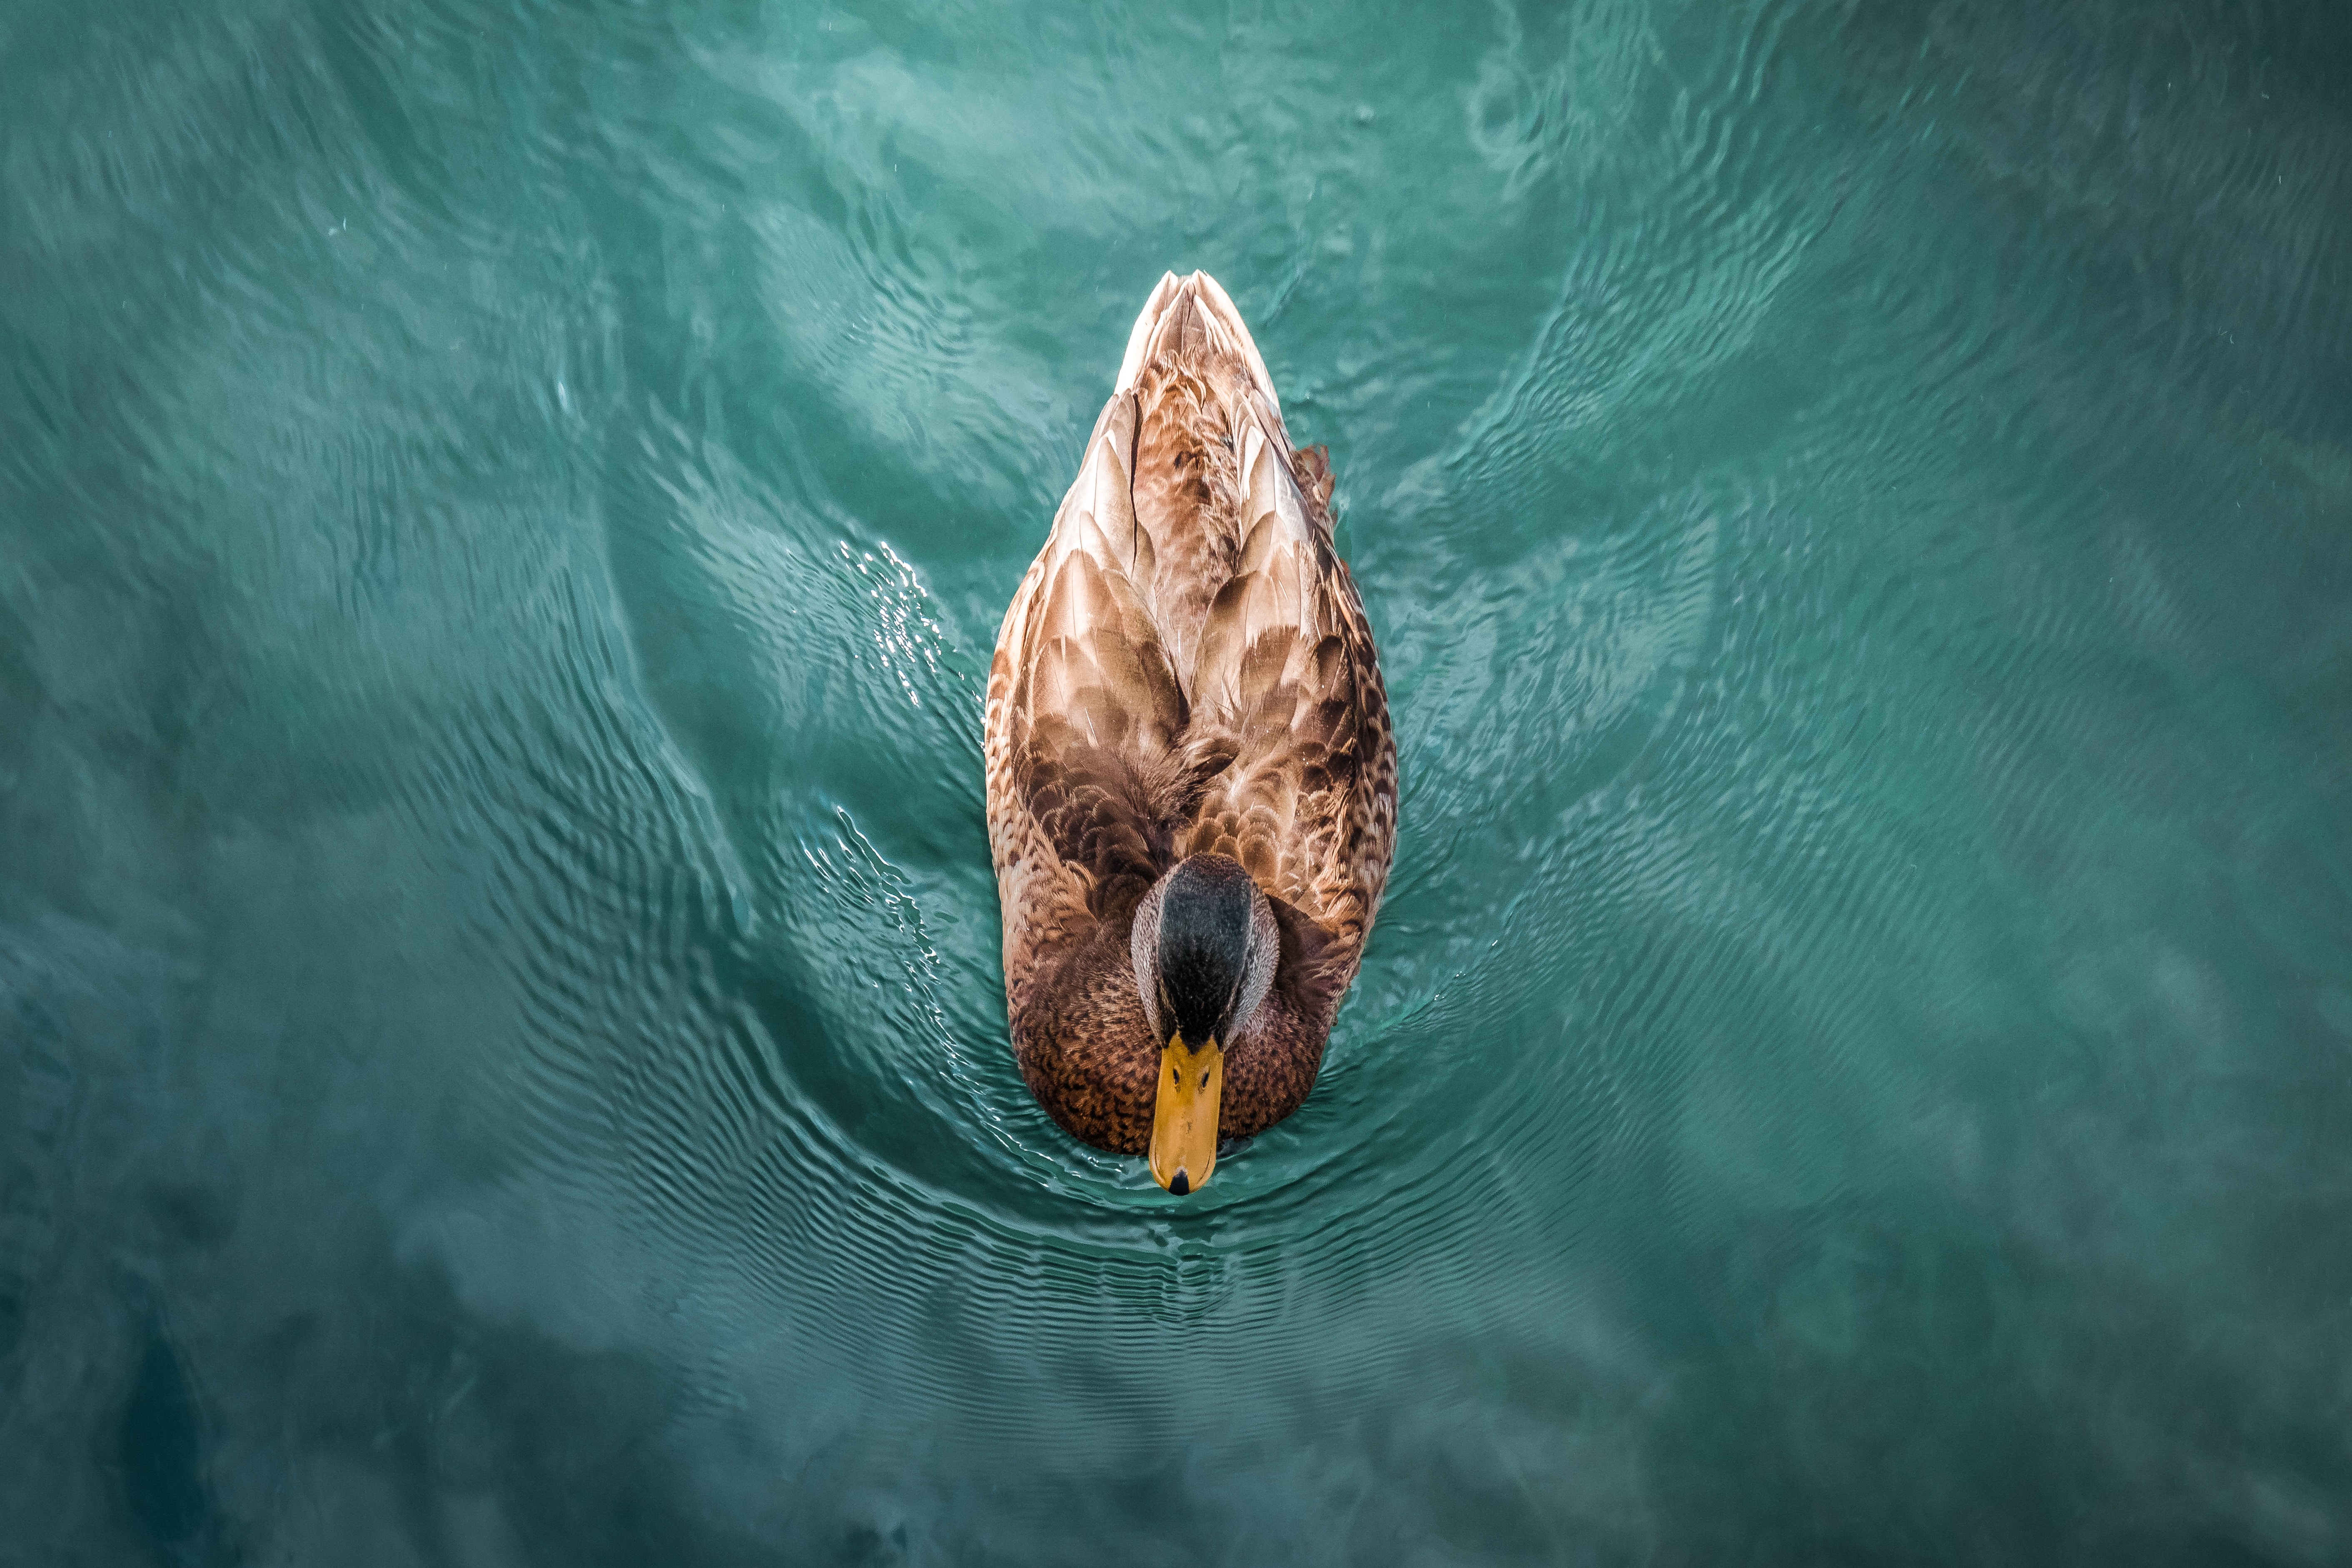 102346 download wallpaper Animals, Duck, Bird, Water, To Swim, Swim screensavers and pictures for free